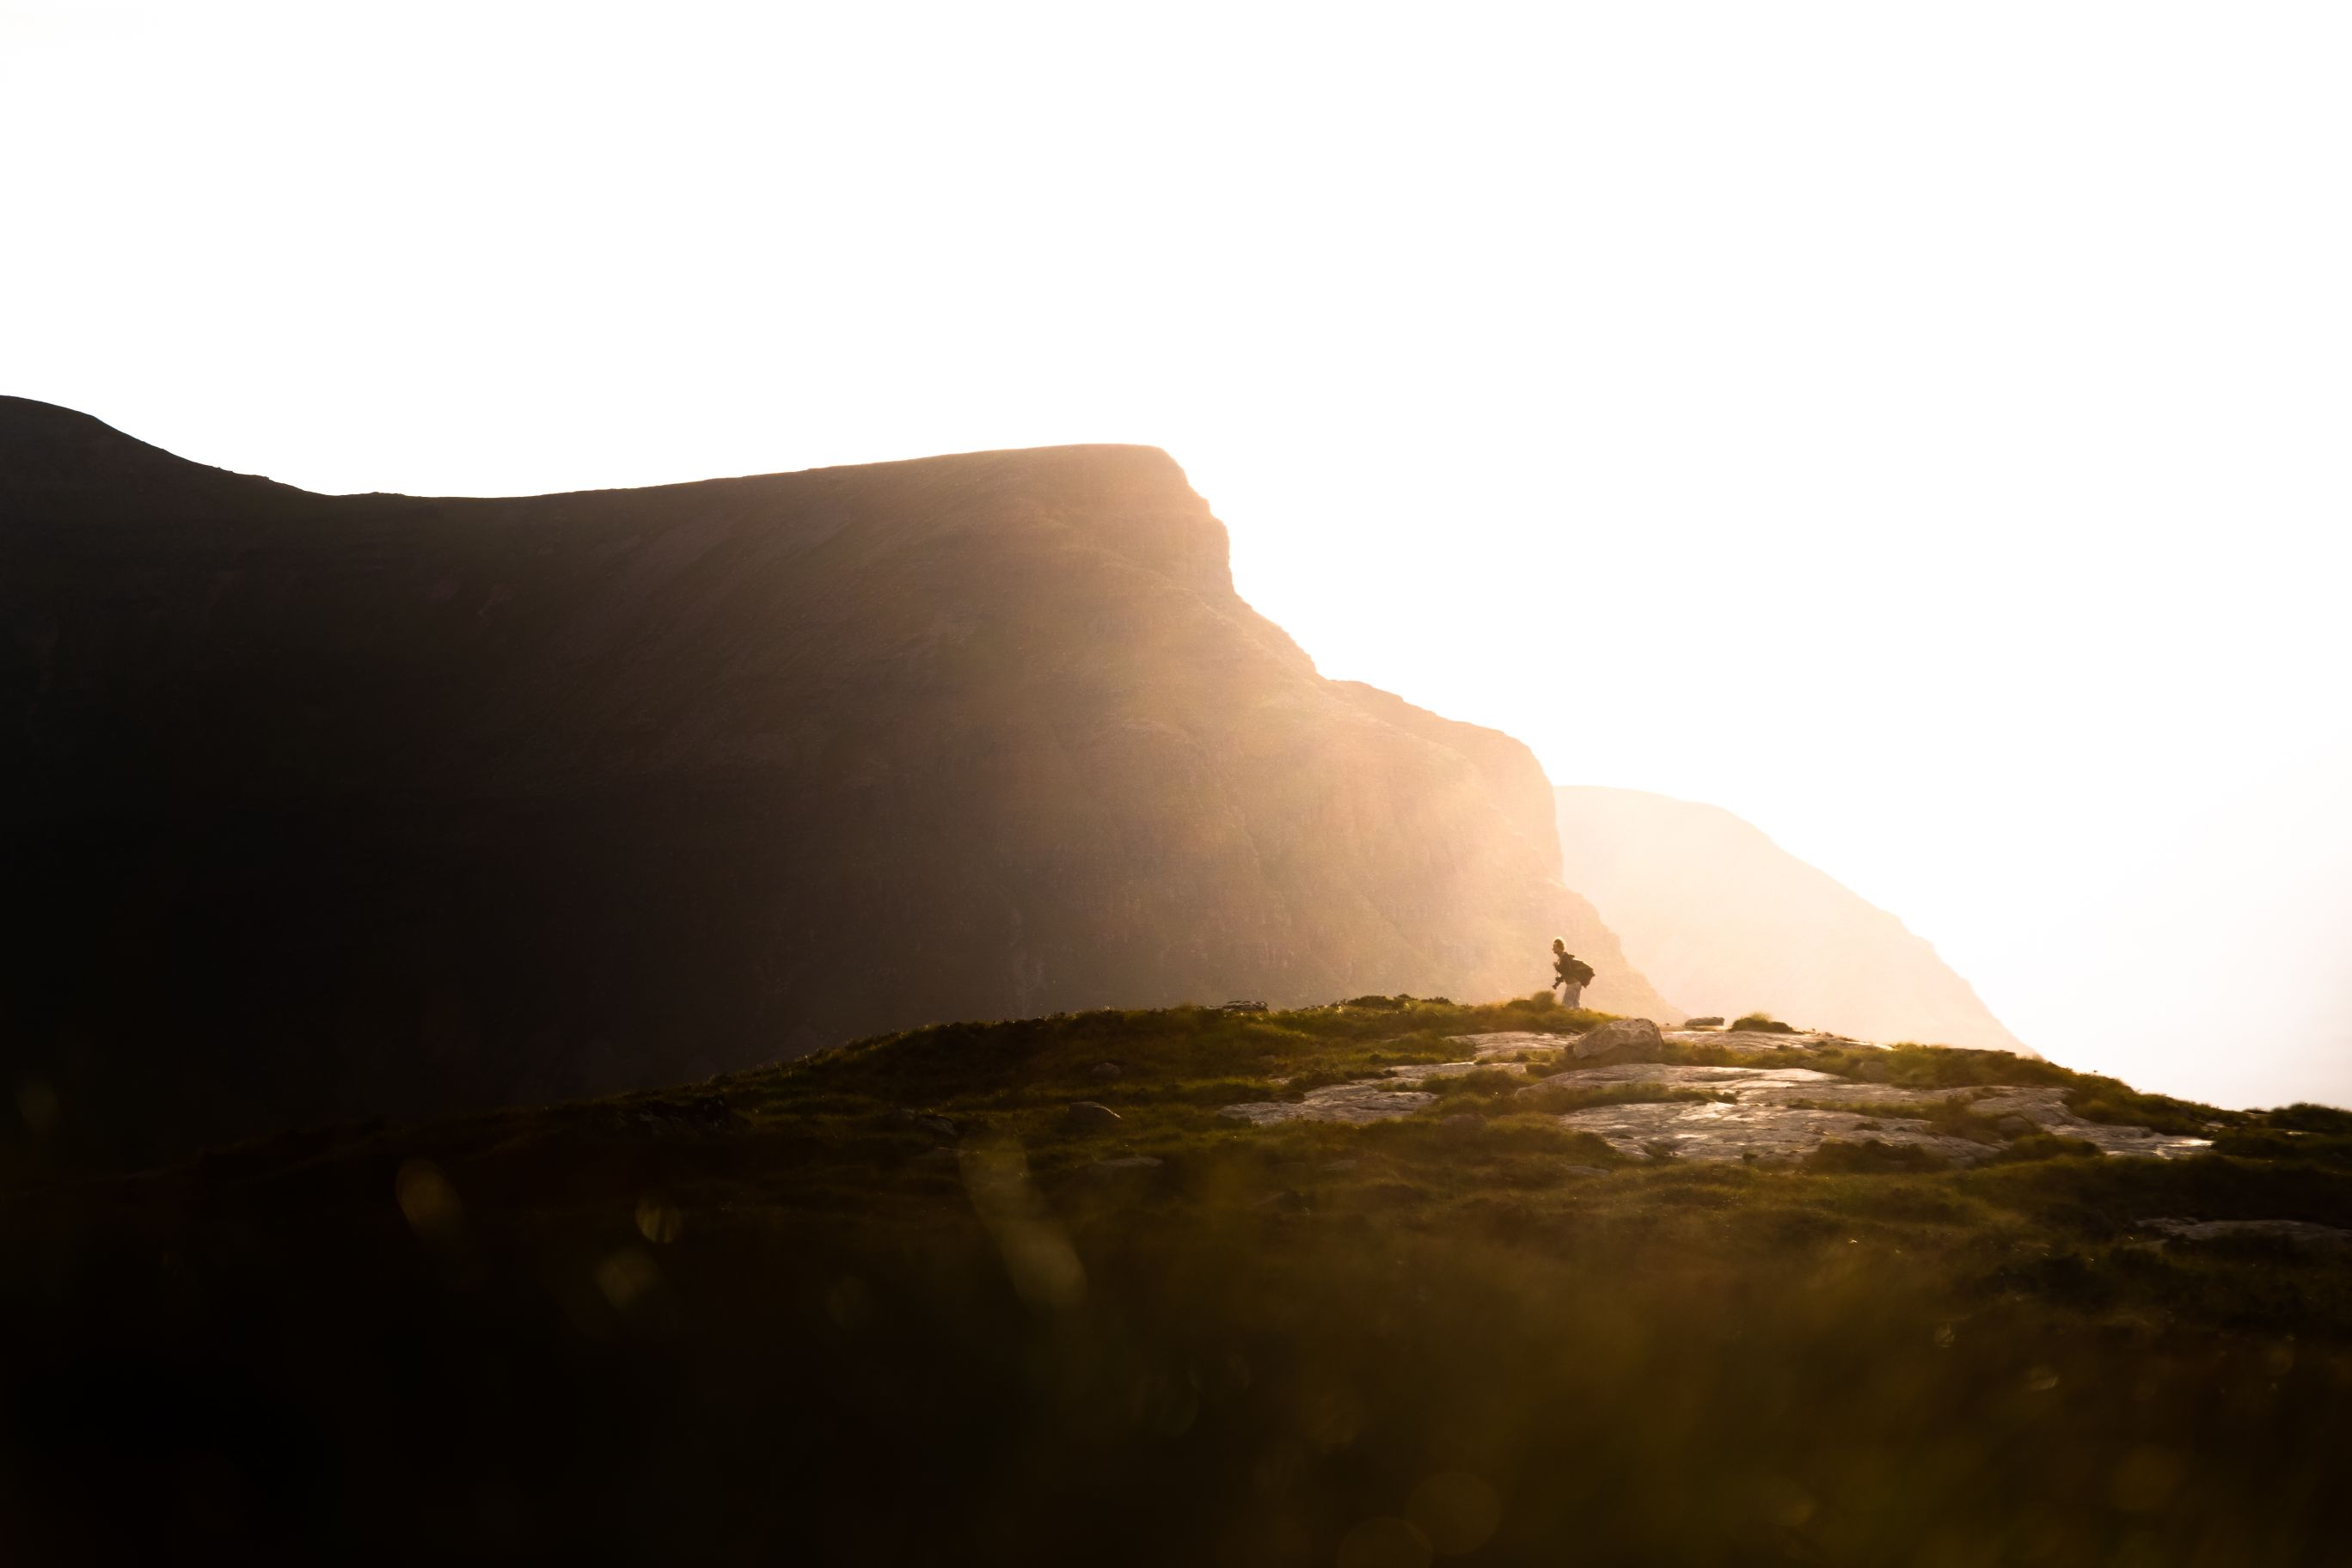 Man walking across rocks with a mountain in the background.